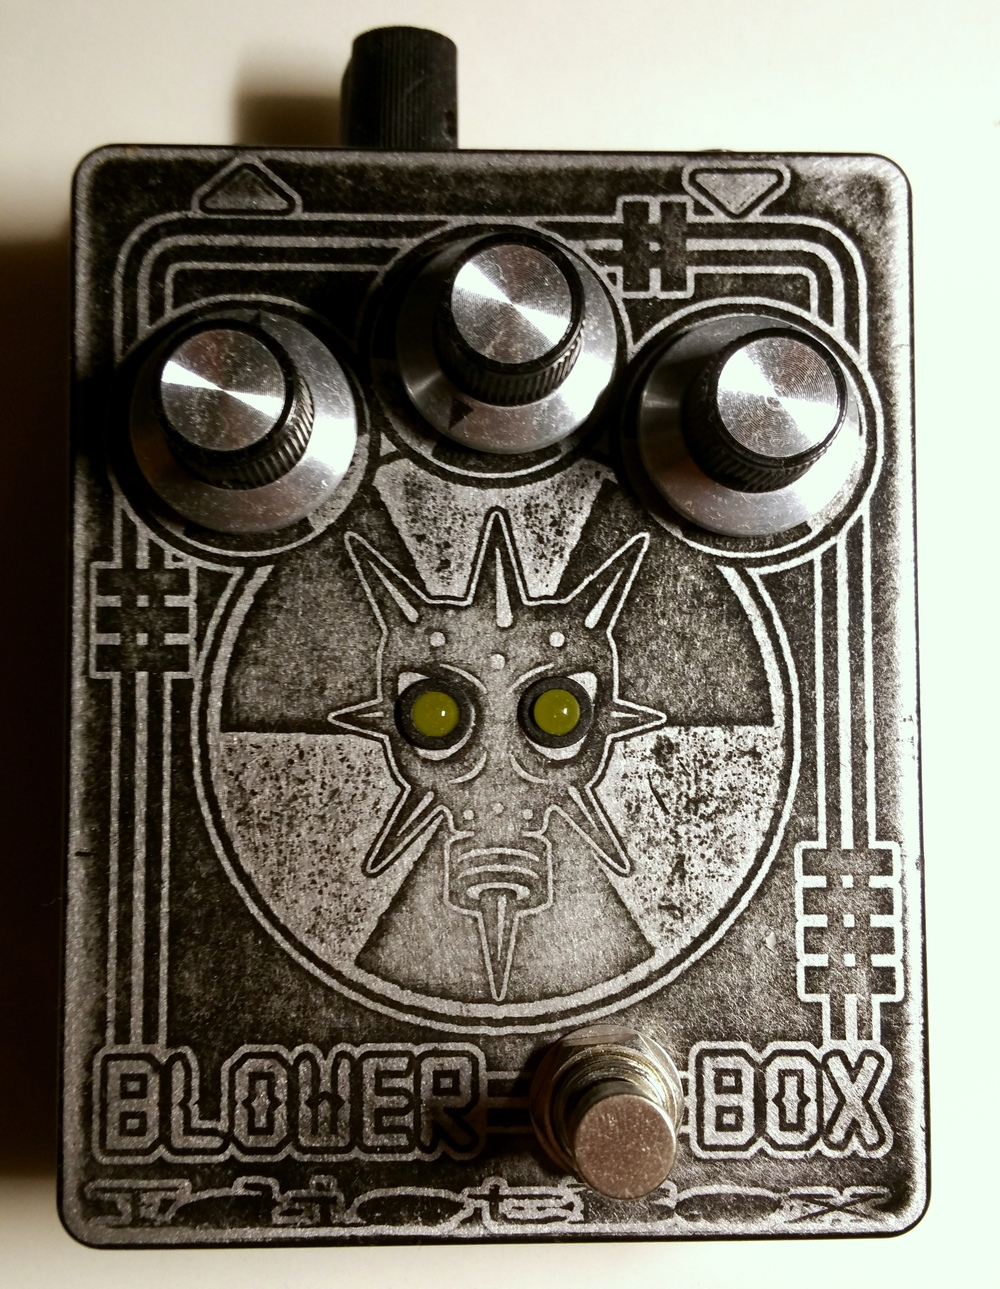 Idiot Box Effects Blower Box Bass Distortion.